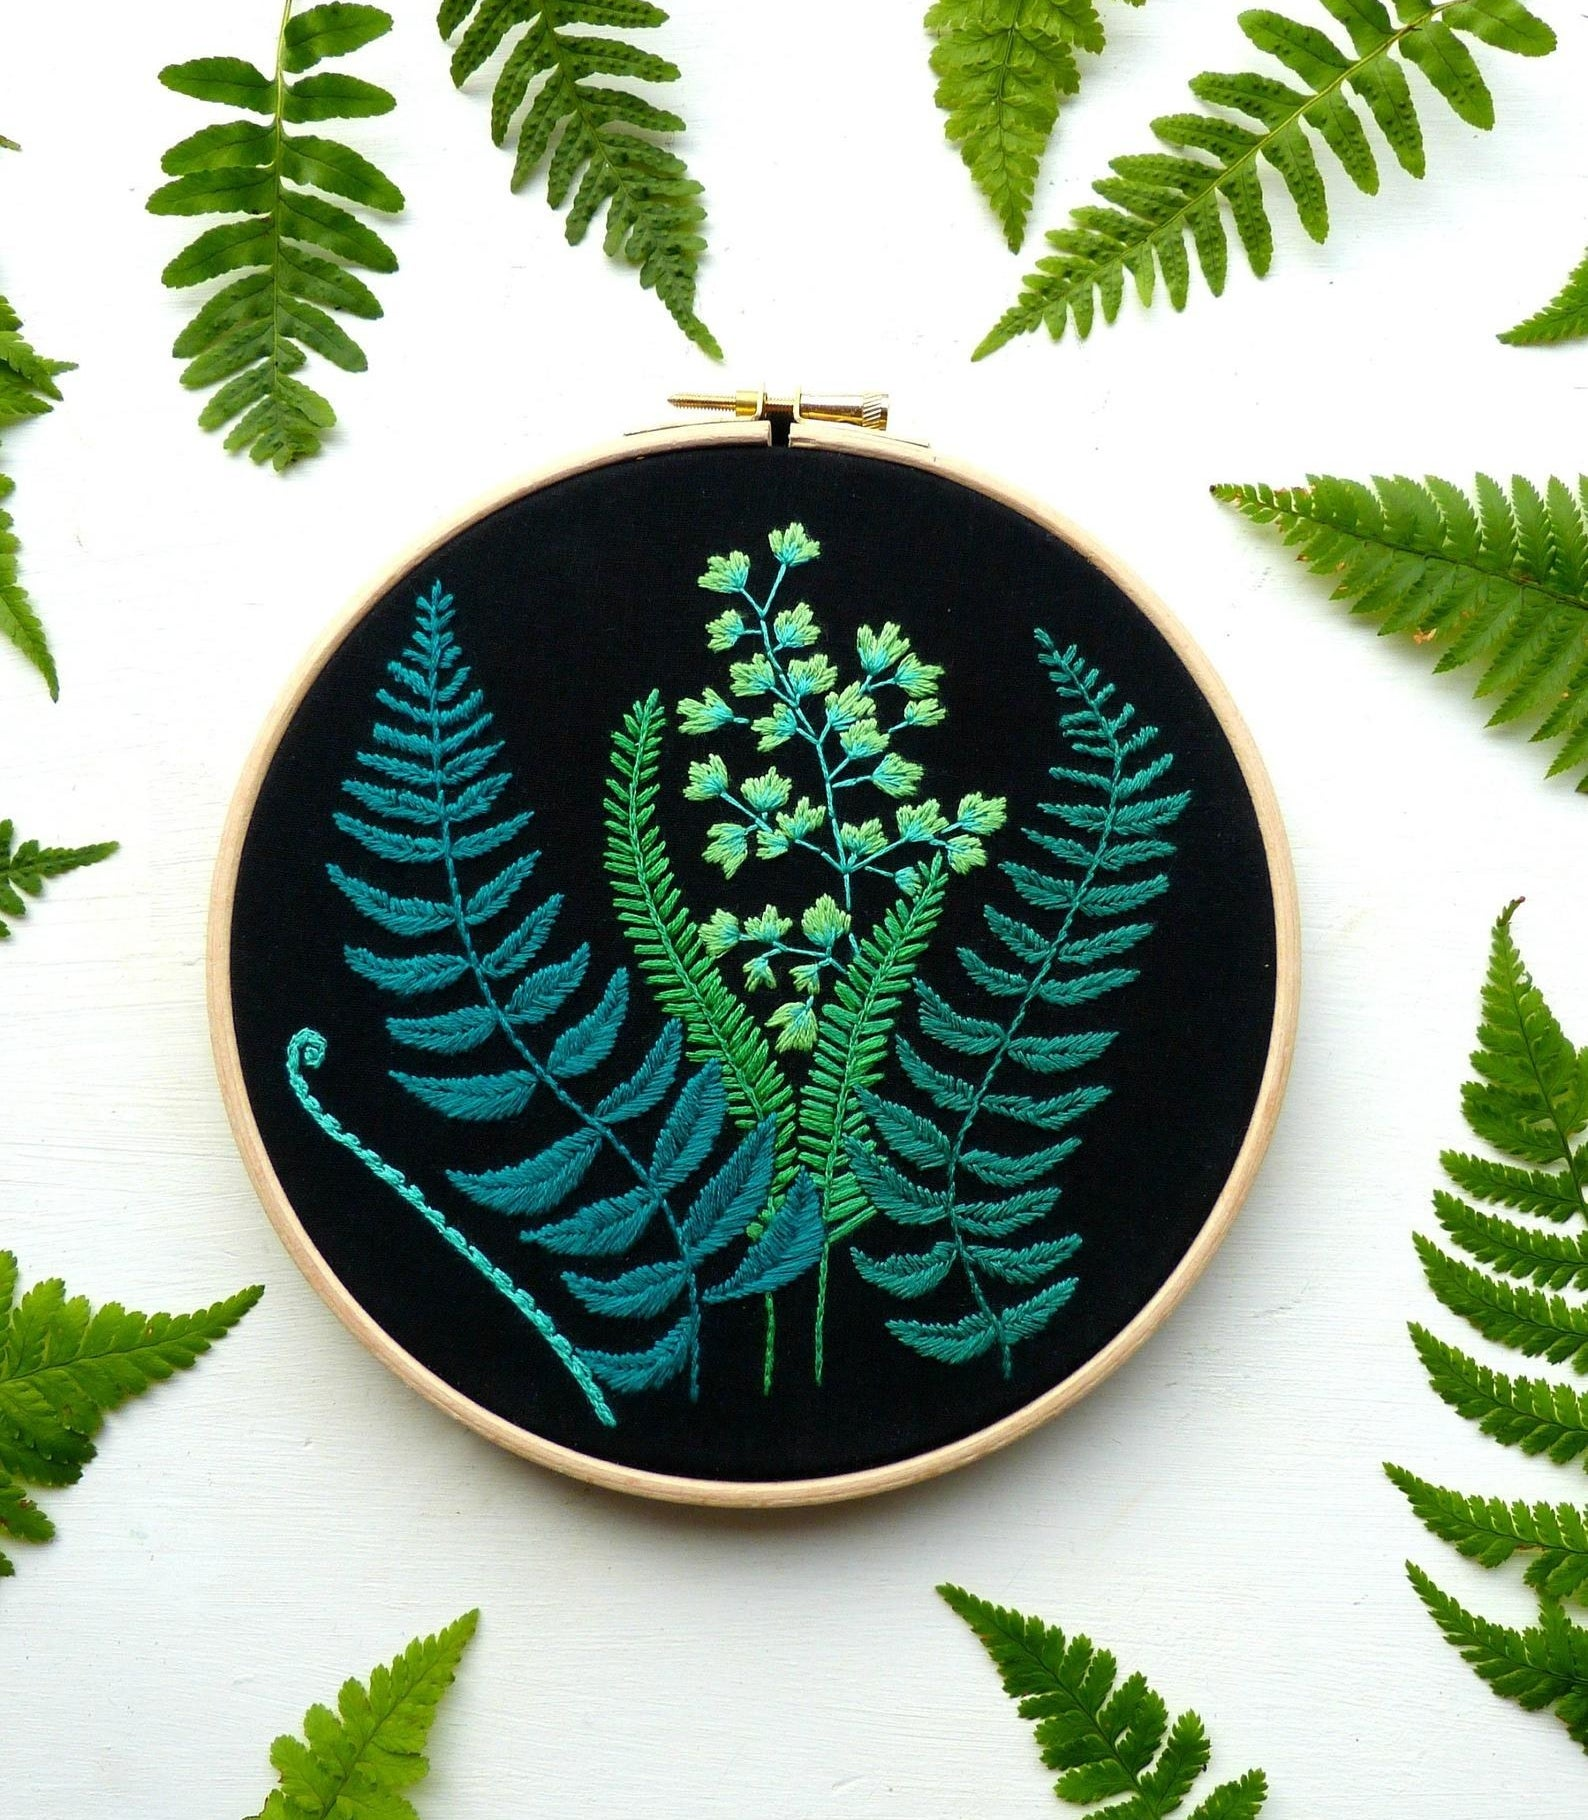 black fabric on a hoop with embroidered ferns and plants in various green shades